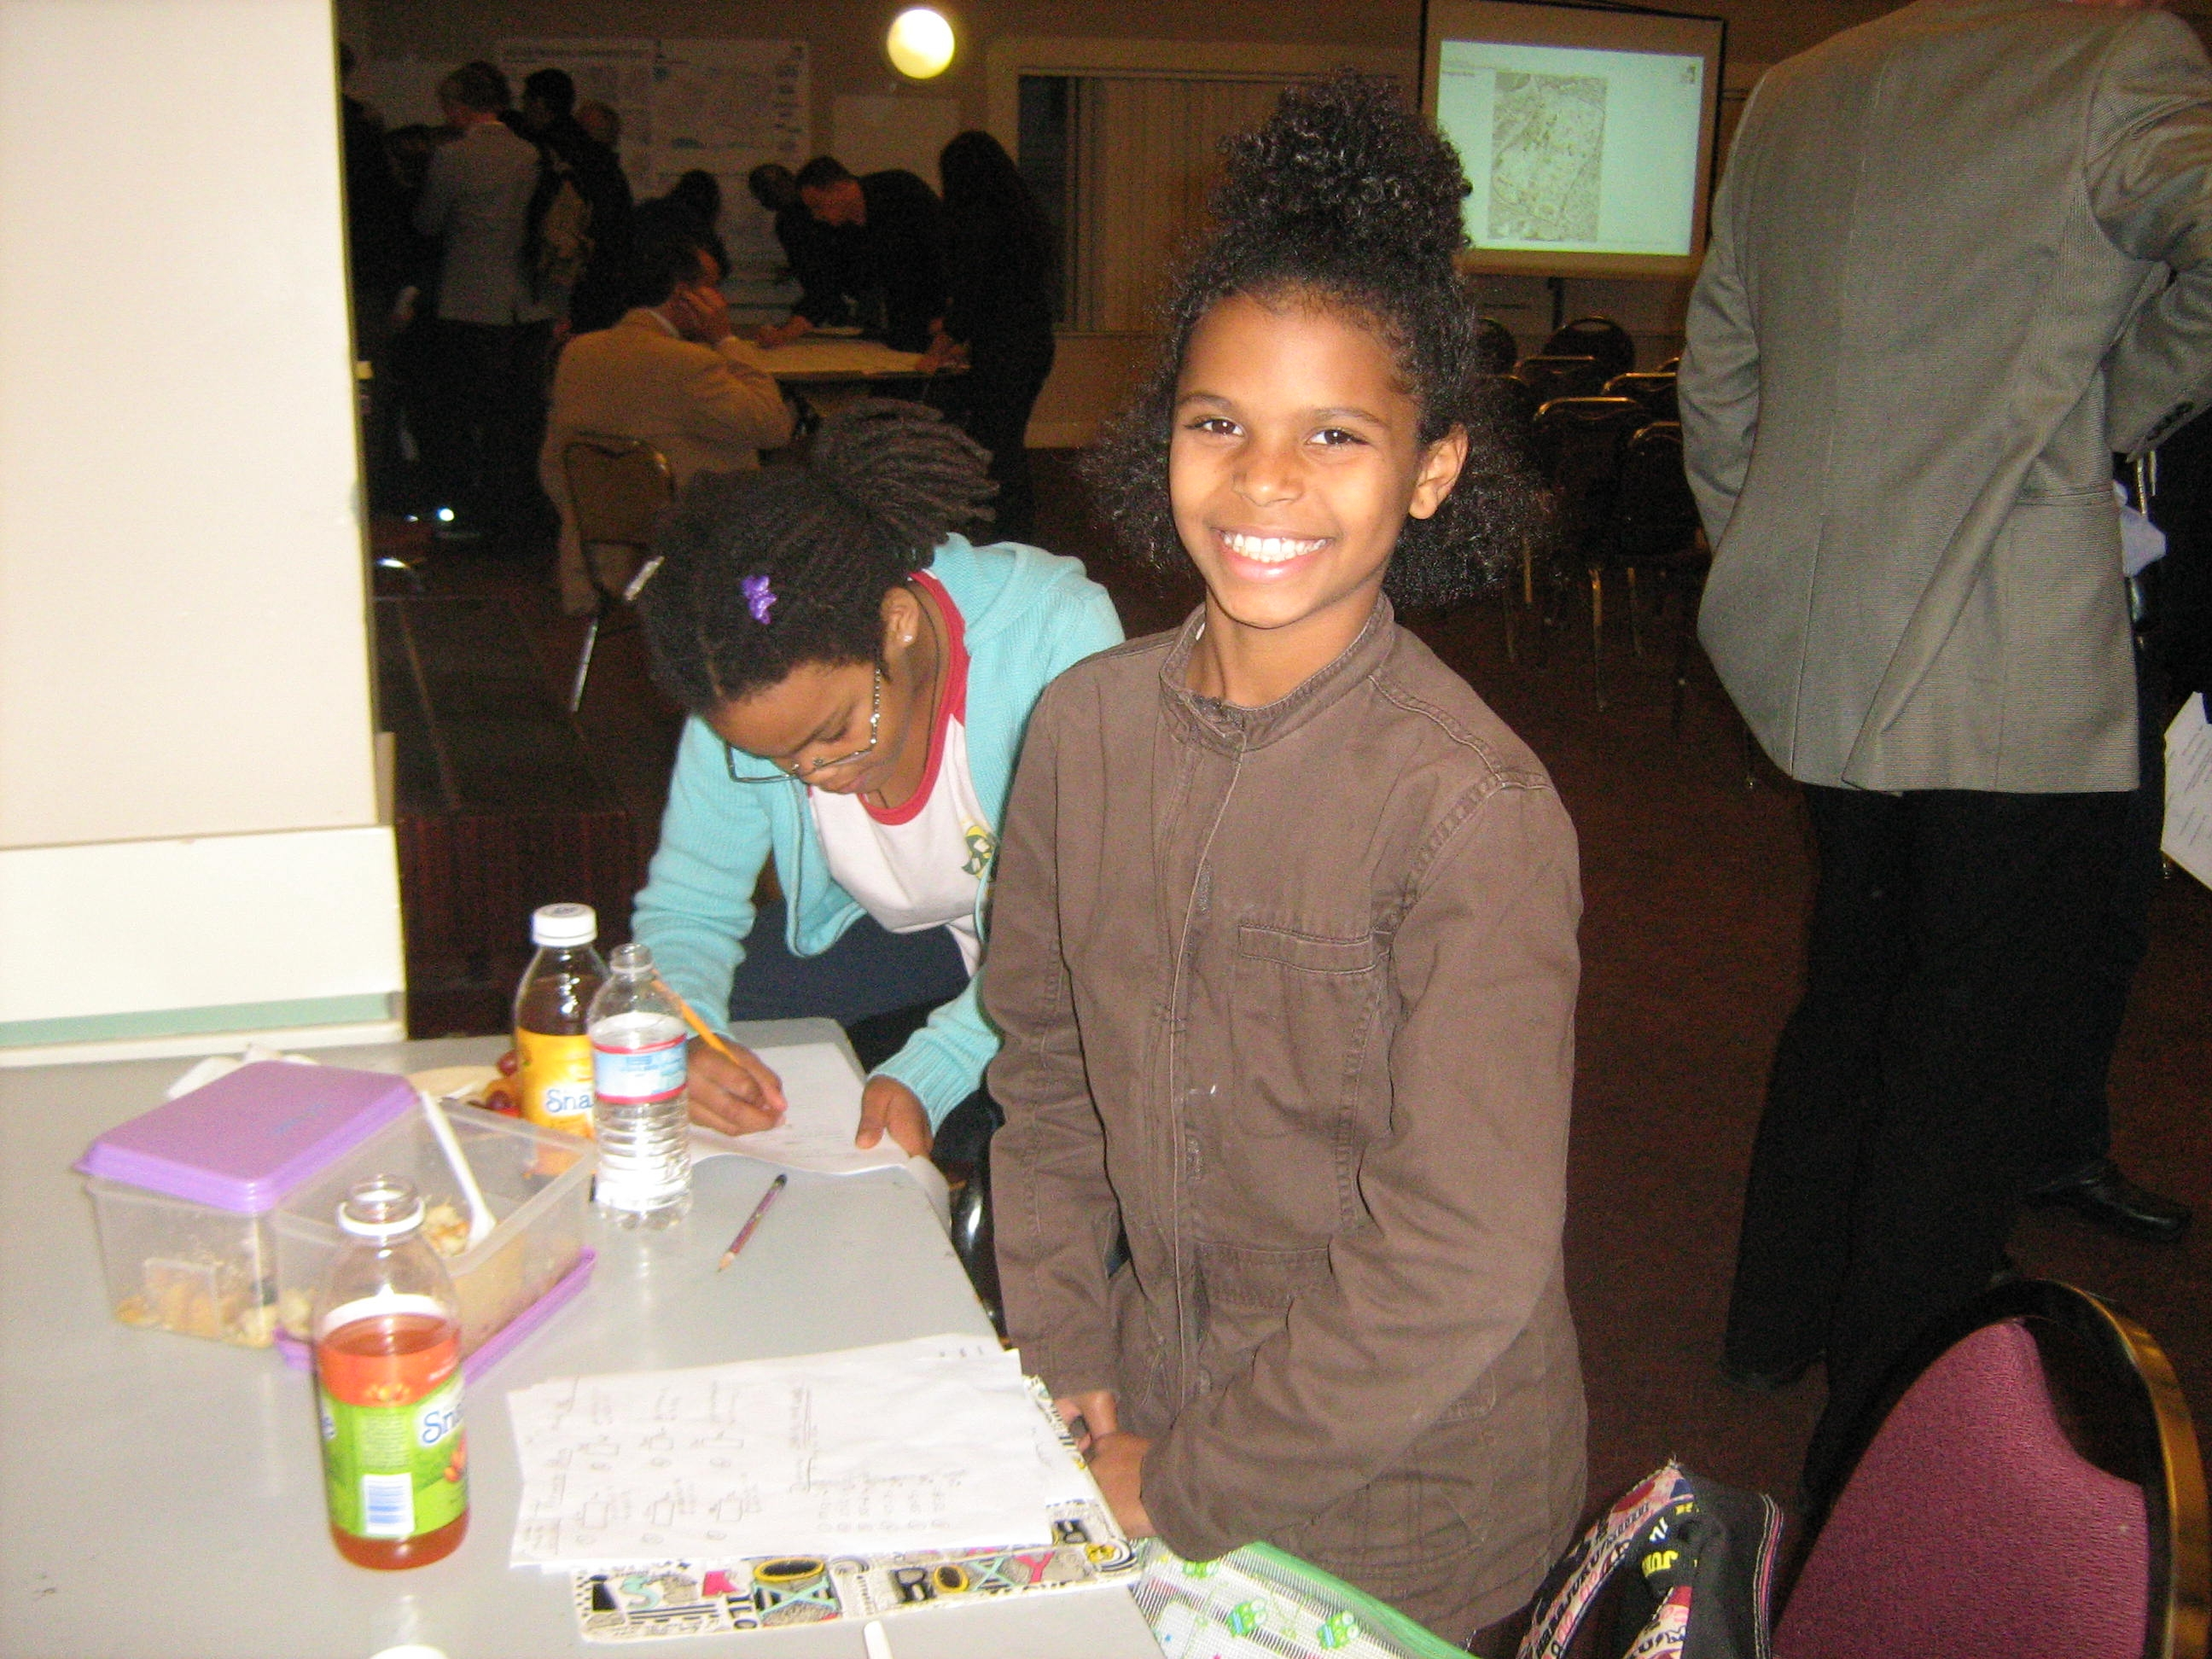 Children participate in the community workshop